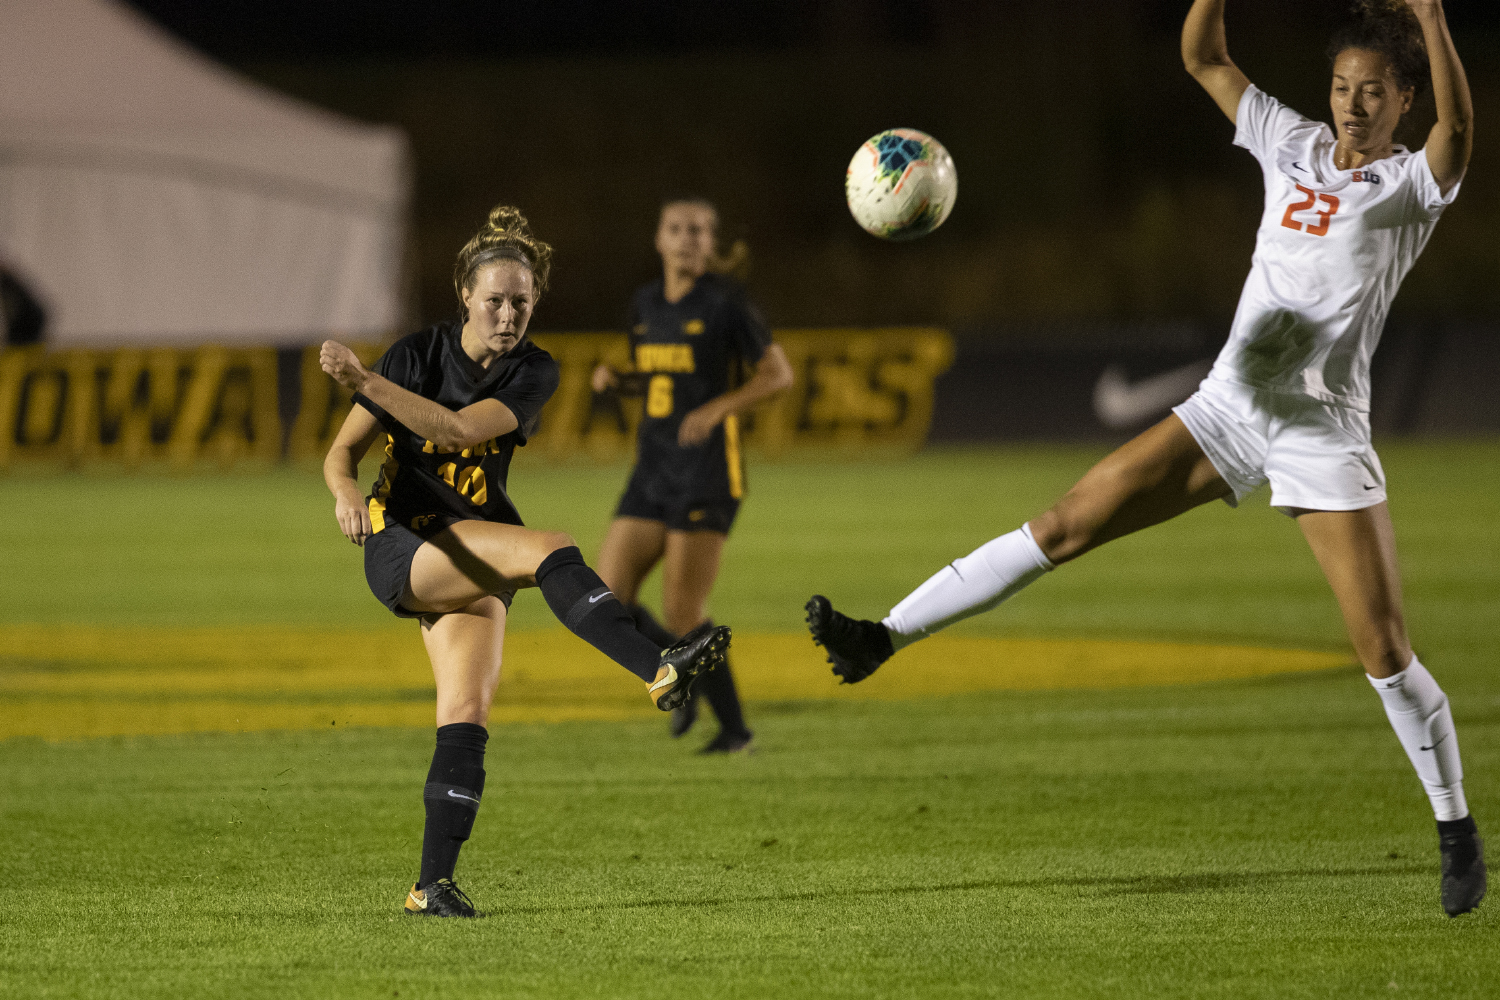 Iowa midfielder Natalie Winters kicks the ball during a soccer game between Iowa and Illinois on Sept. 26, 2019 at the Iowa Soccer Complex. The Hawkeyes defeated the Fighting Illini, 3-1.